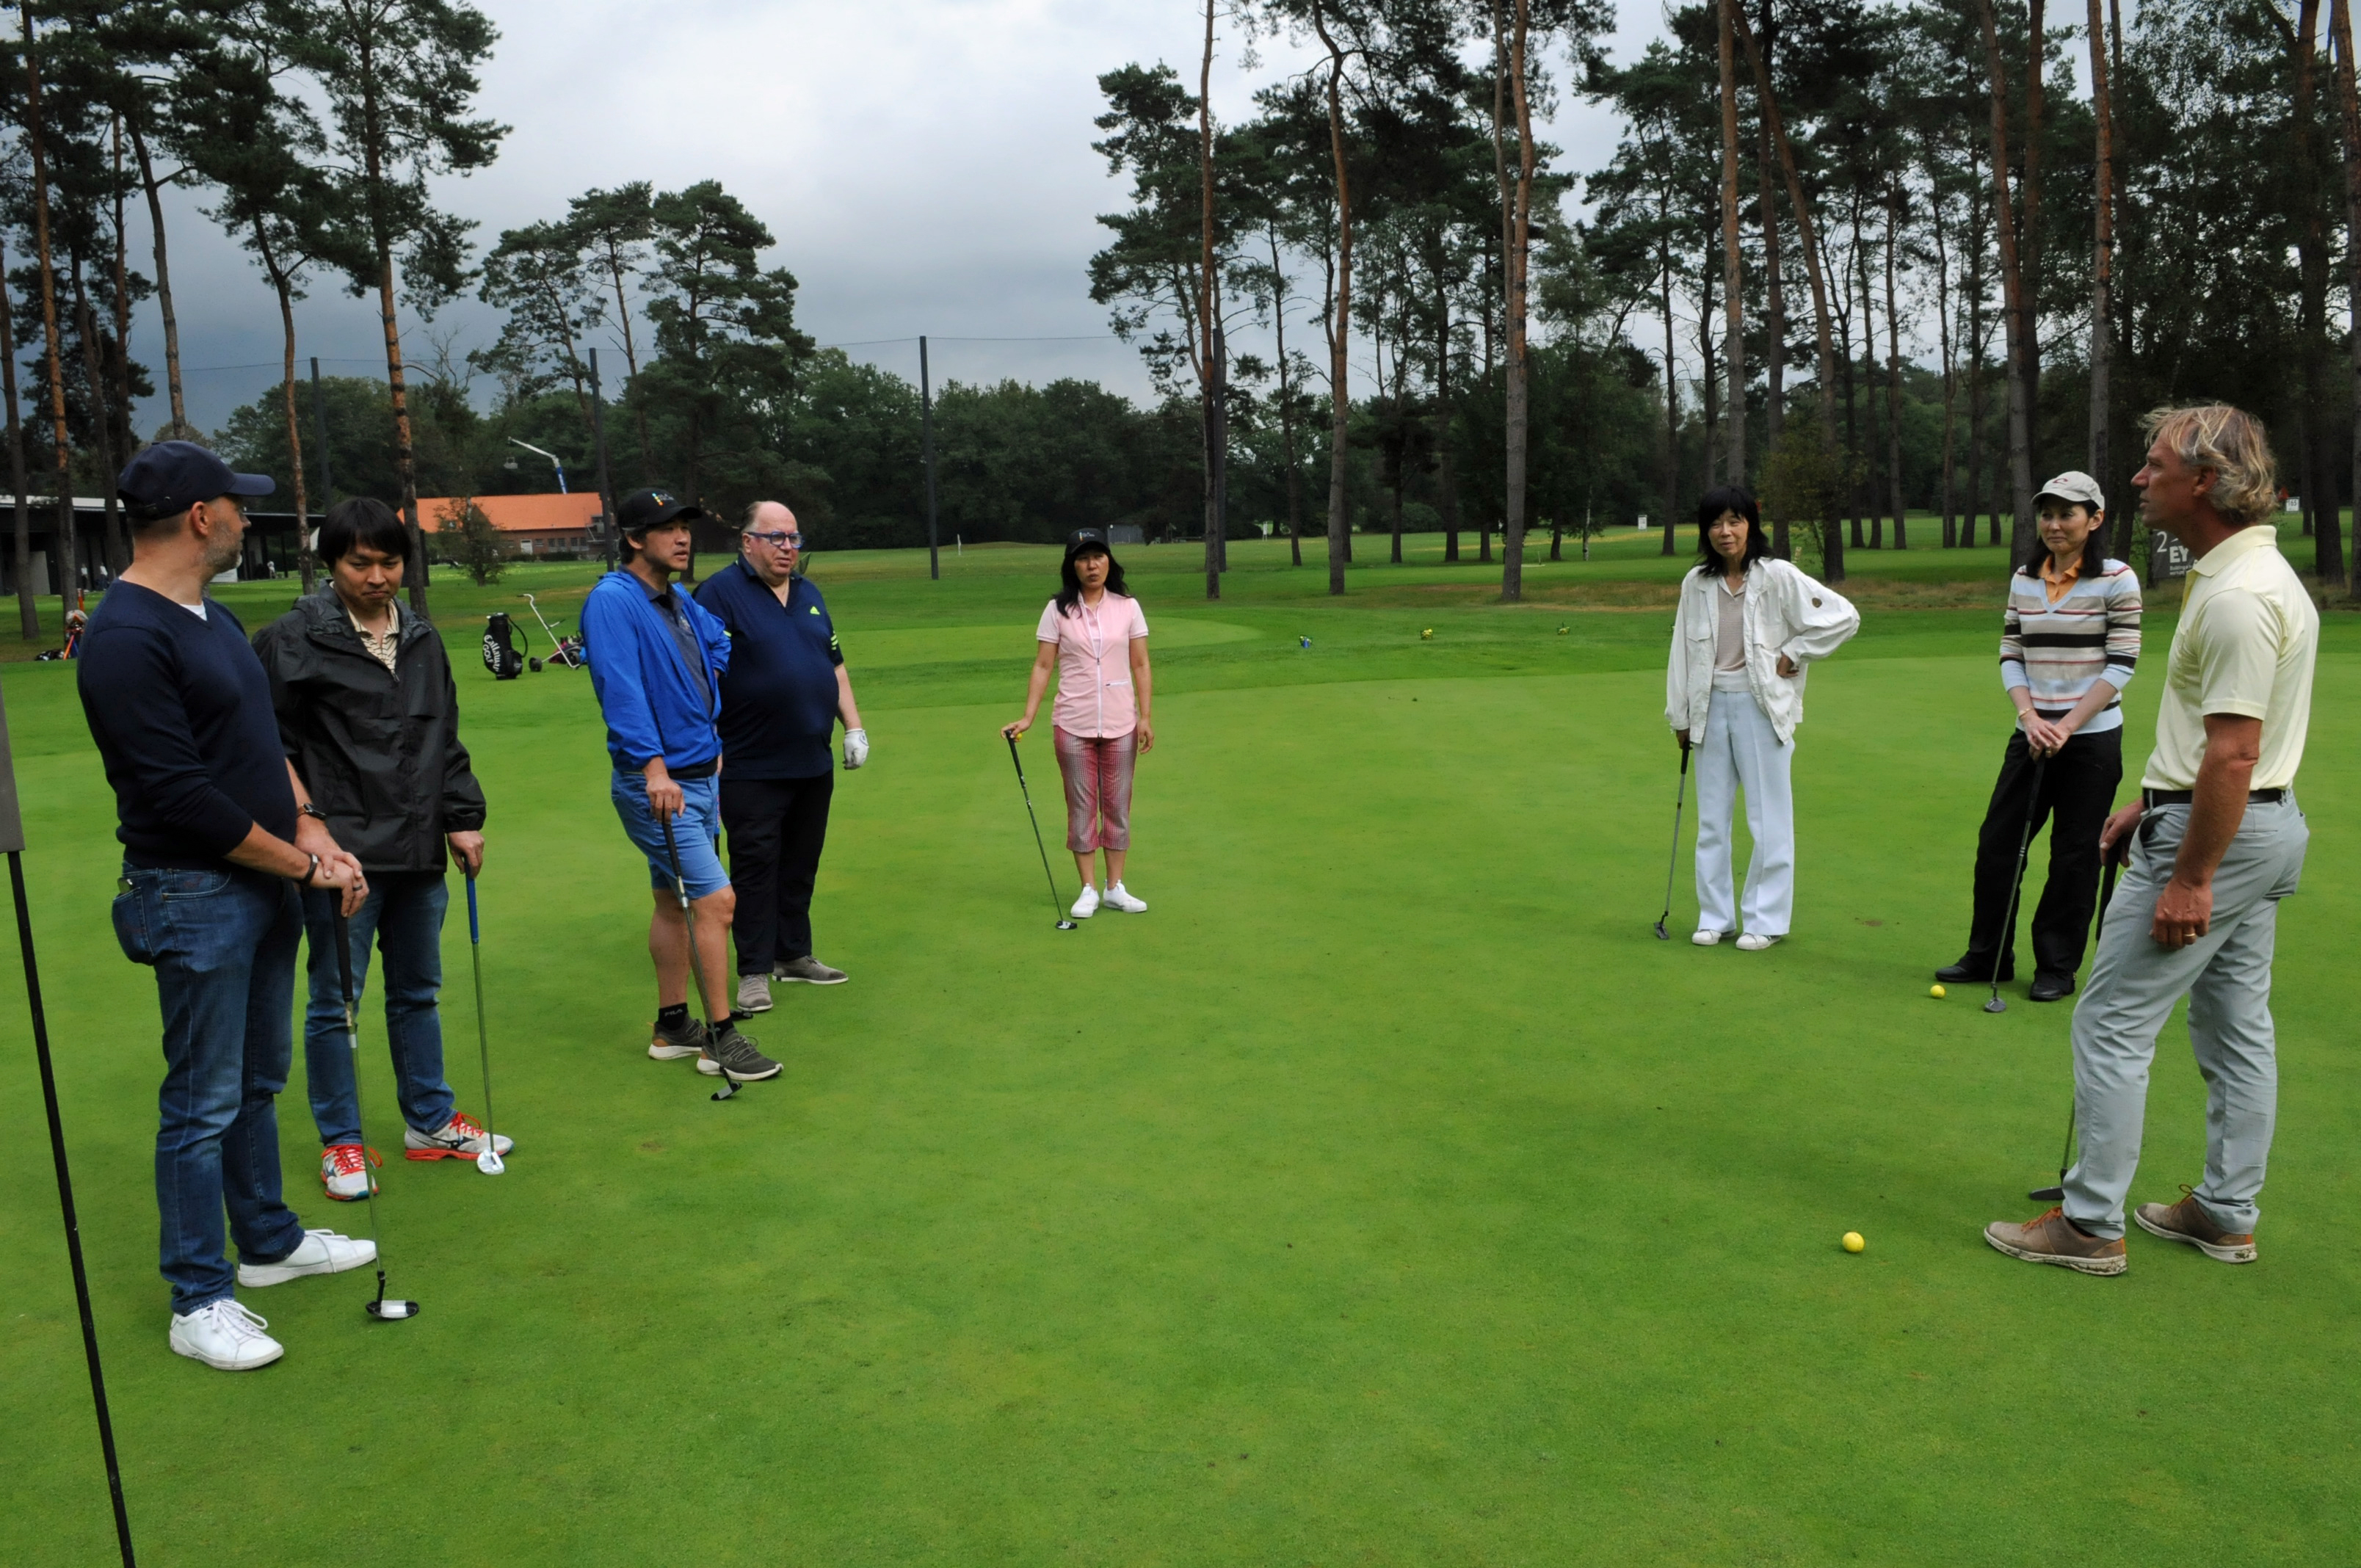 Photo: Pictures of the 2021 BJA Golf Cup & Golf Initiation